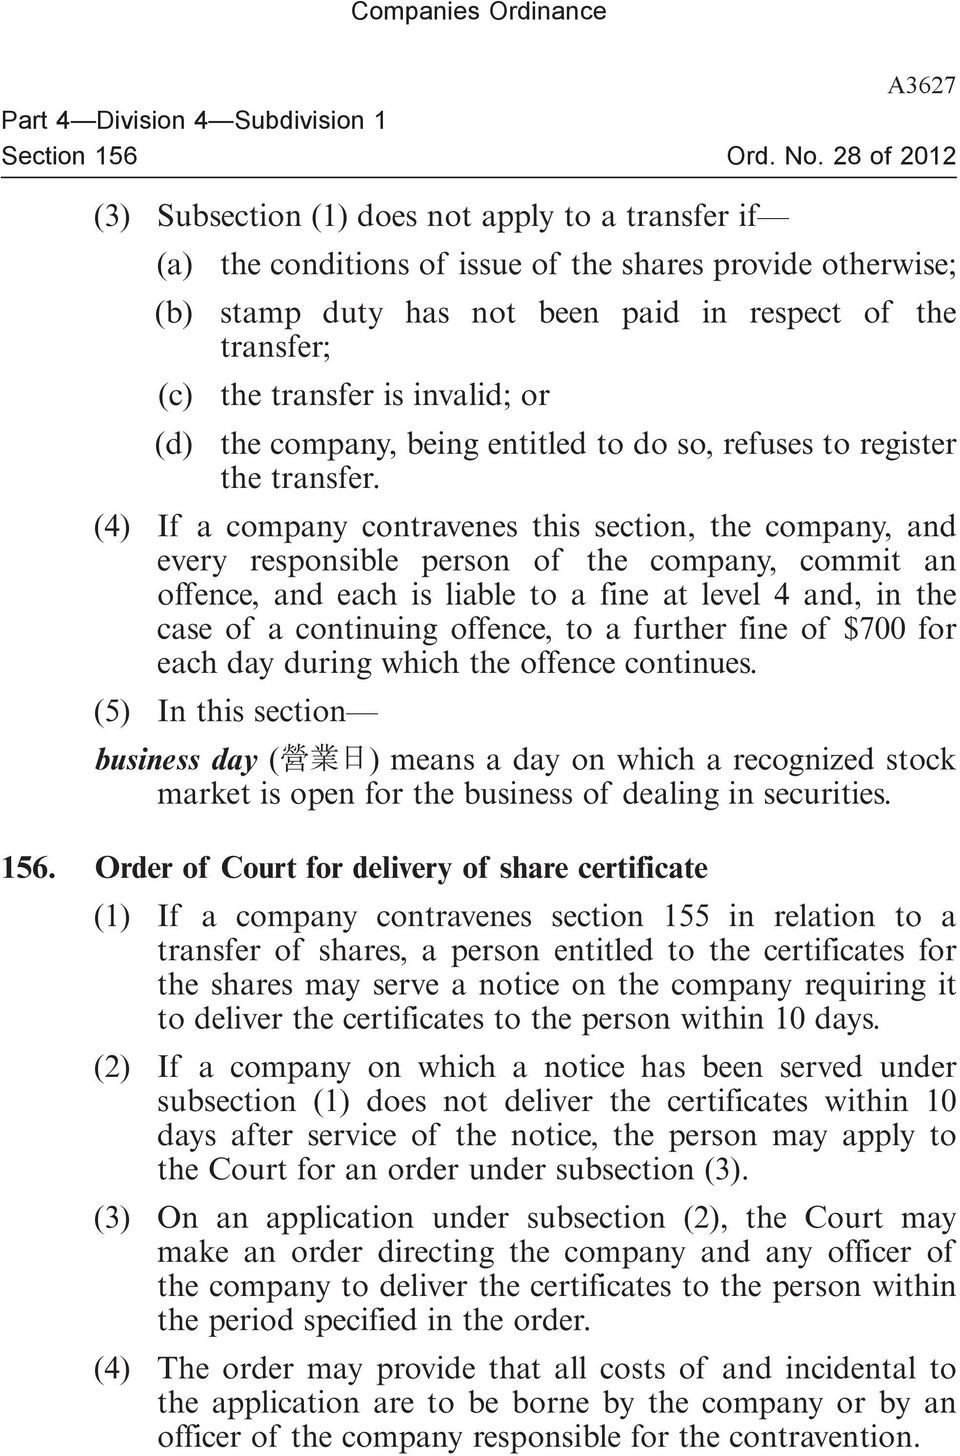 (4) If a company contravenes this section, the company, and every responsible person of the company, commit an offence, and each is liable to a fine at level 4 and, in the case of a continuing